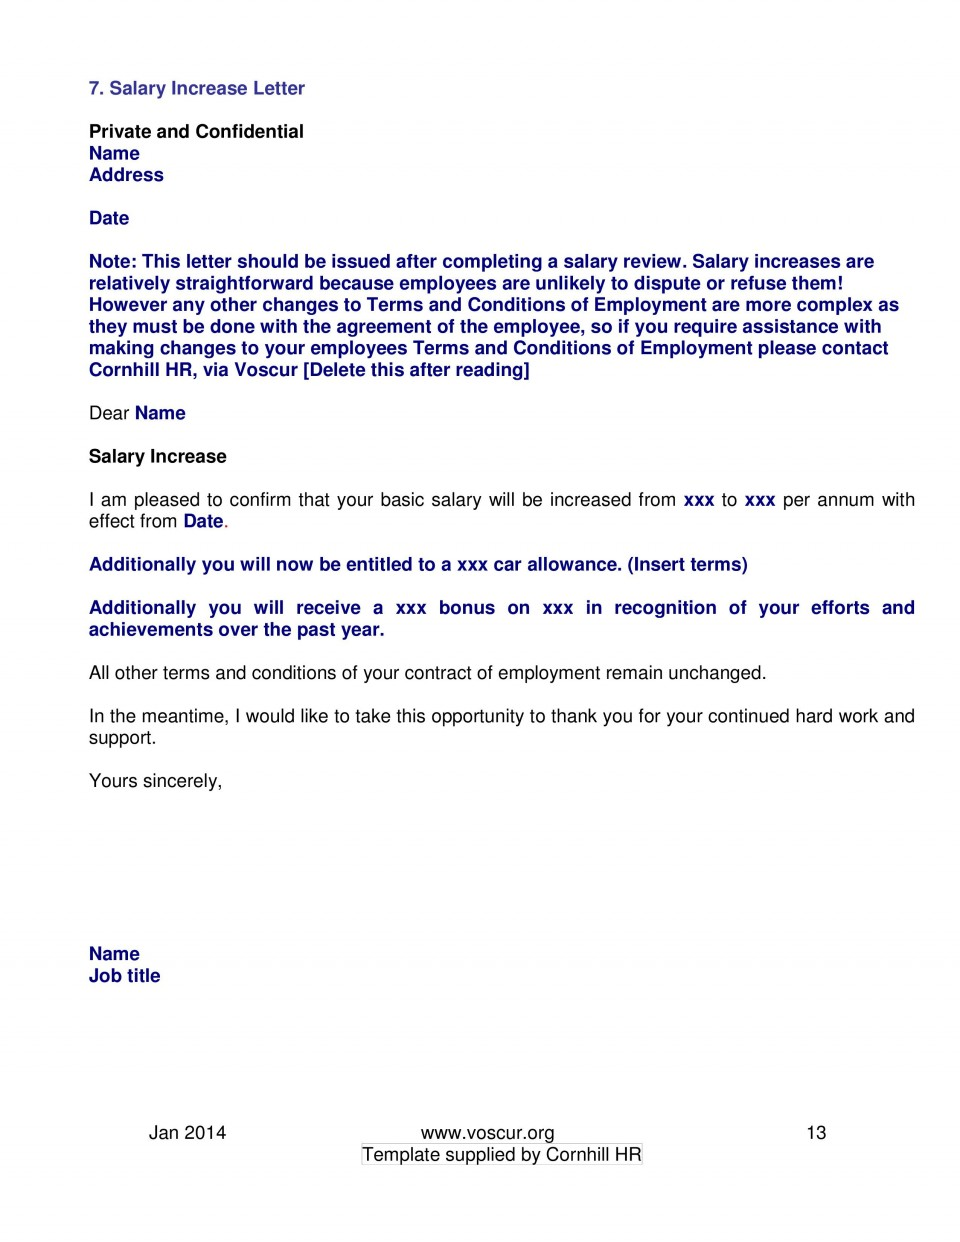 002 Excellent Salary Increase Letter Template High Resolution  From Employer To Employee Australia No For960